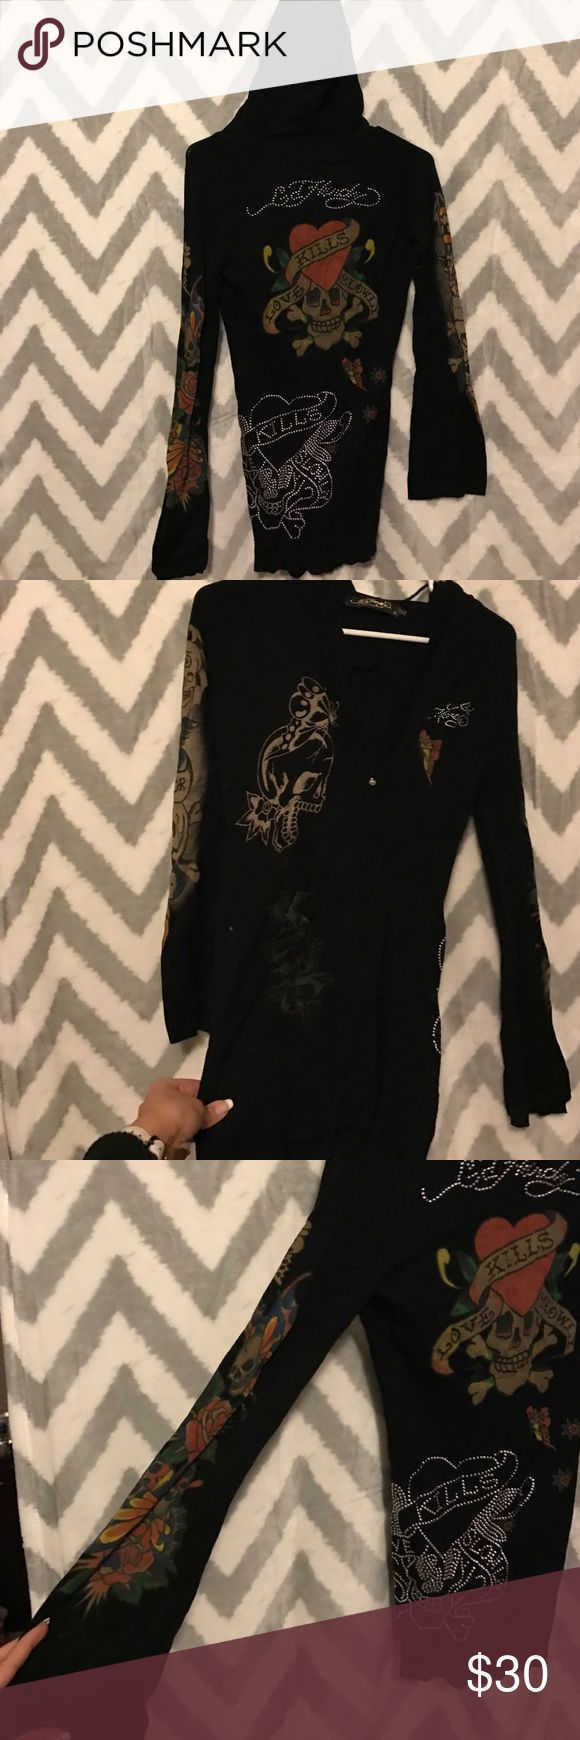 """Ed hardy hooded sweater Super cute and slimming! Ed hardy black and """"tattooed"""" hooded sweater. Long and has cute flared sleeves. Ed Hardy Sweaters V-Necks"""